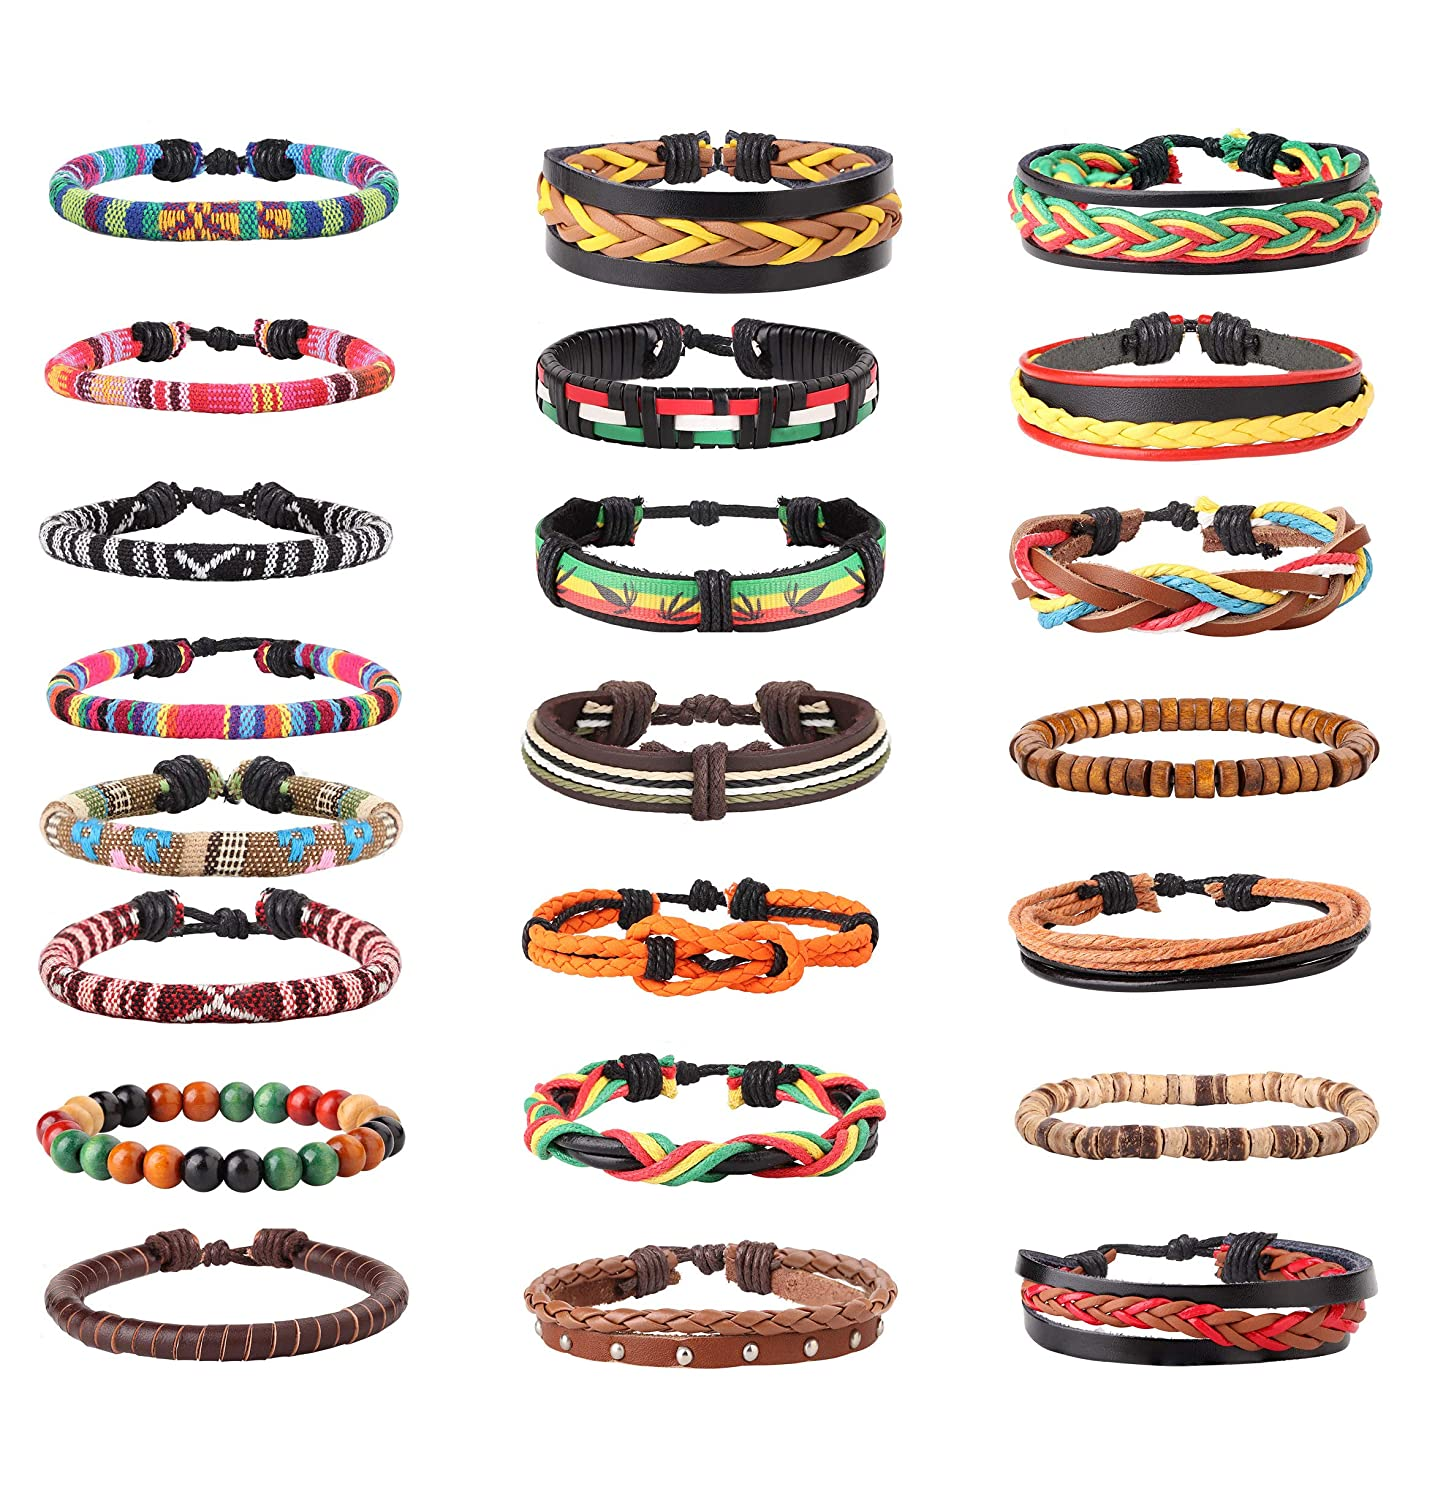 LOYALLOOK 22Pcs Braided Leather Bracelet Cords Linen Hemp Wooden Beads Bracelets Ethnic Tribal Bracelets Adjustable Wristbands for Men Women LK-M-B0006-22pcs